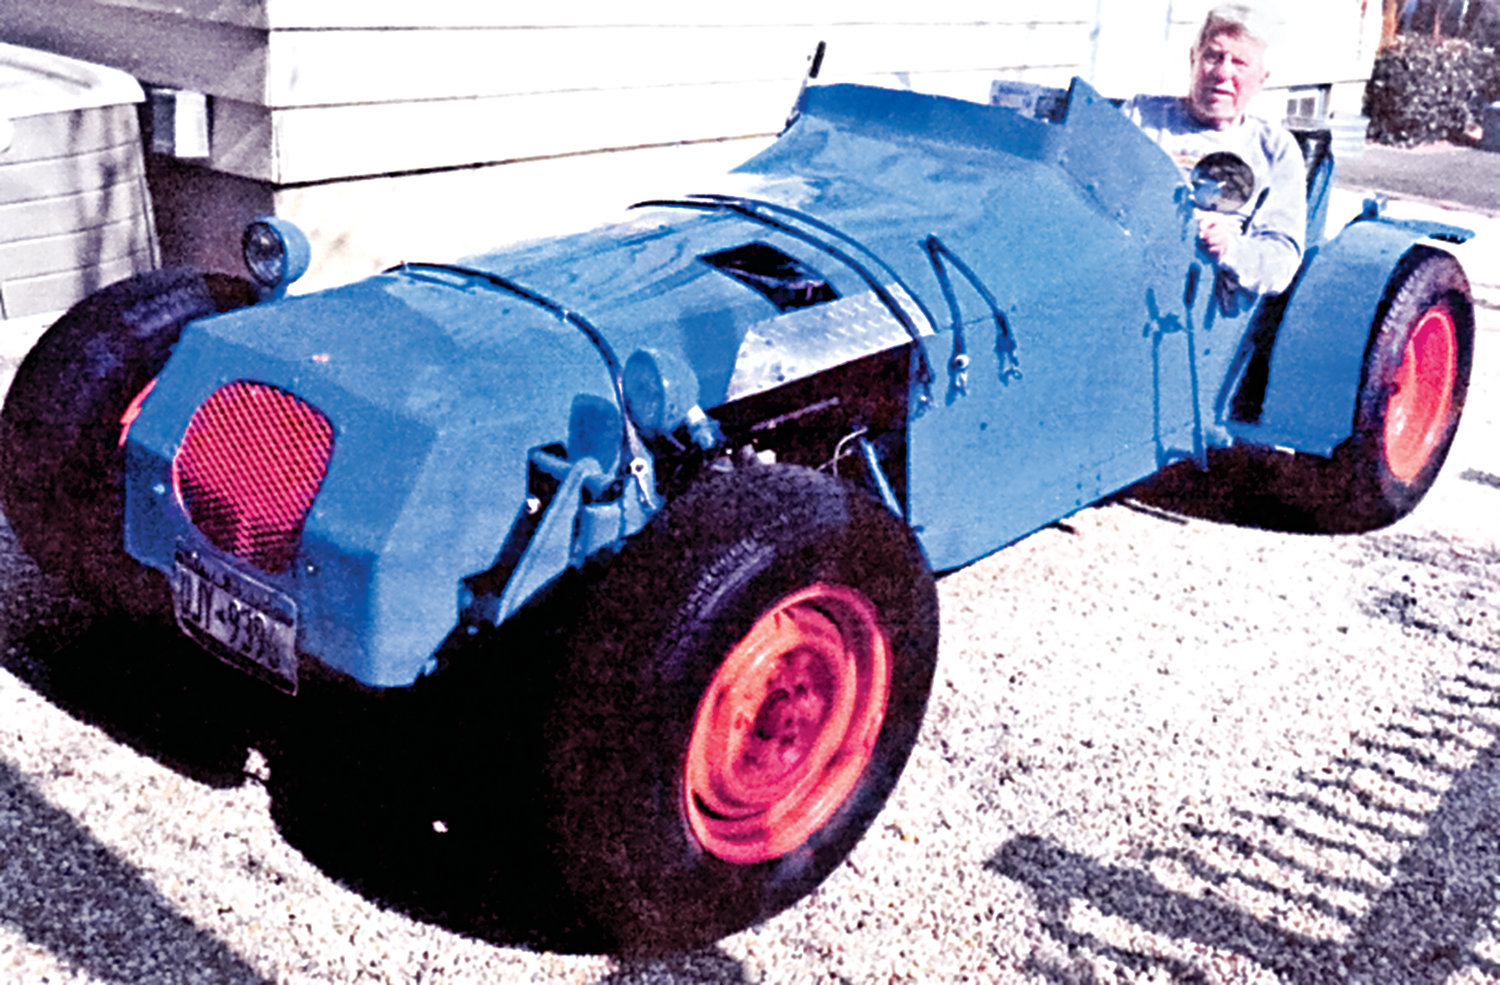 Road Panther Roger Thyben built his own hot rod out of discarded lockers from Locust Valley High School.